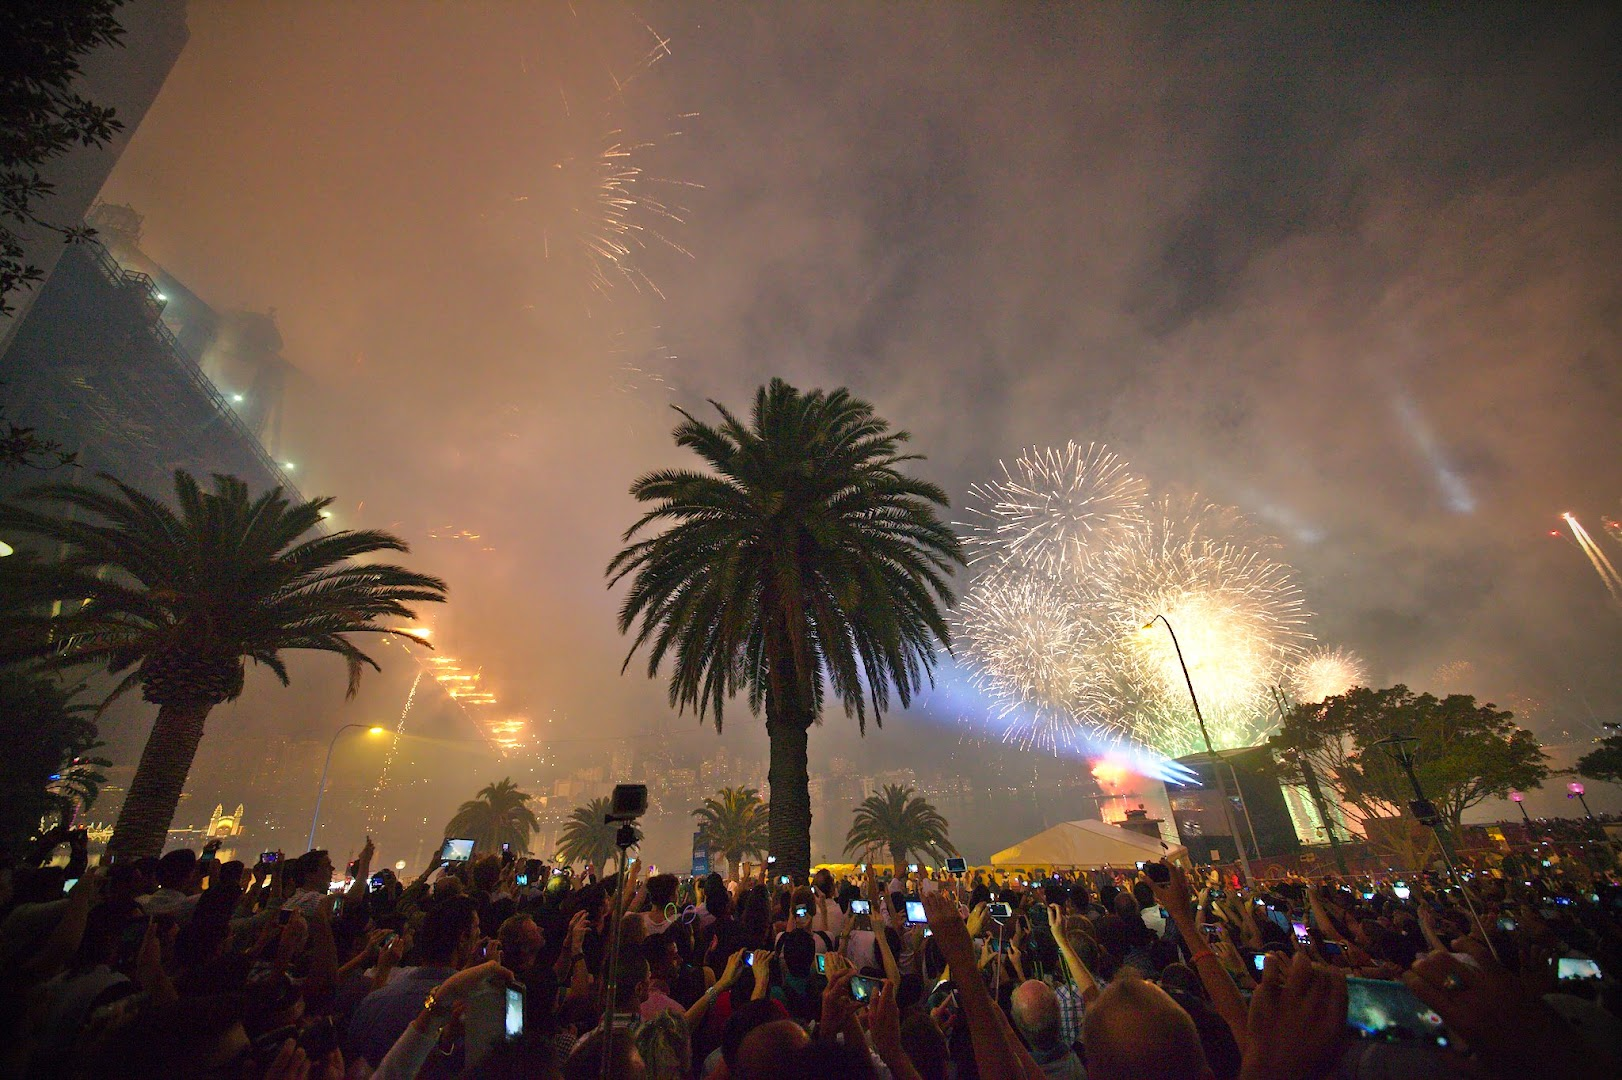 The real NYE fireworks up-close are much more awesome!